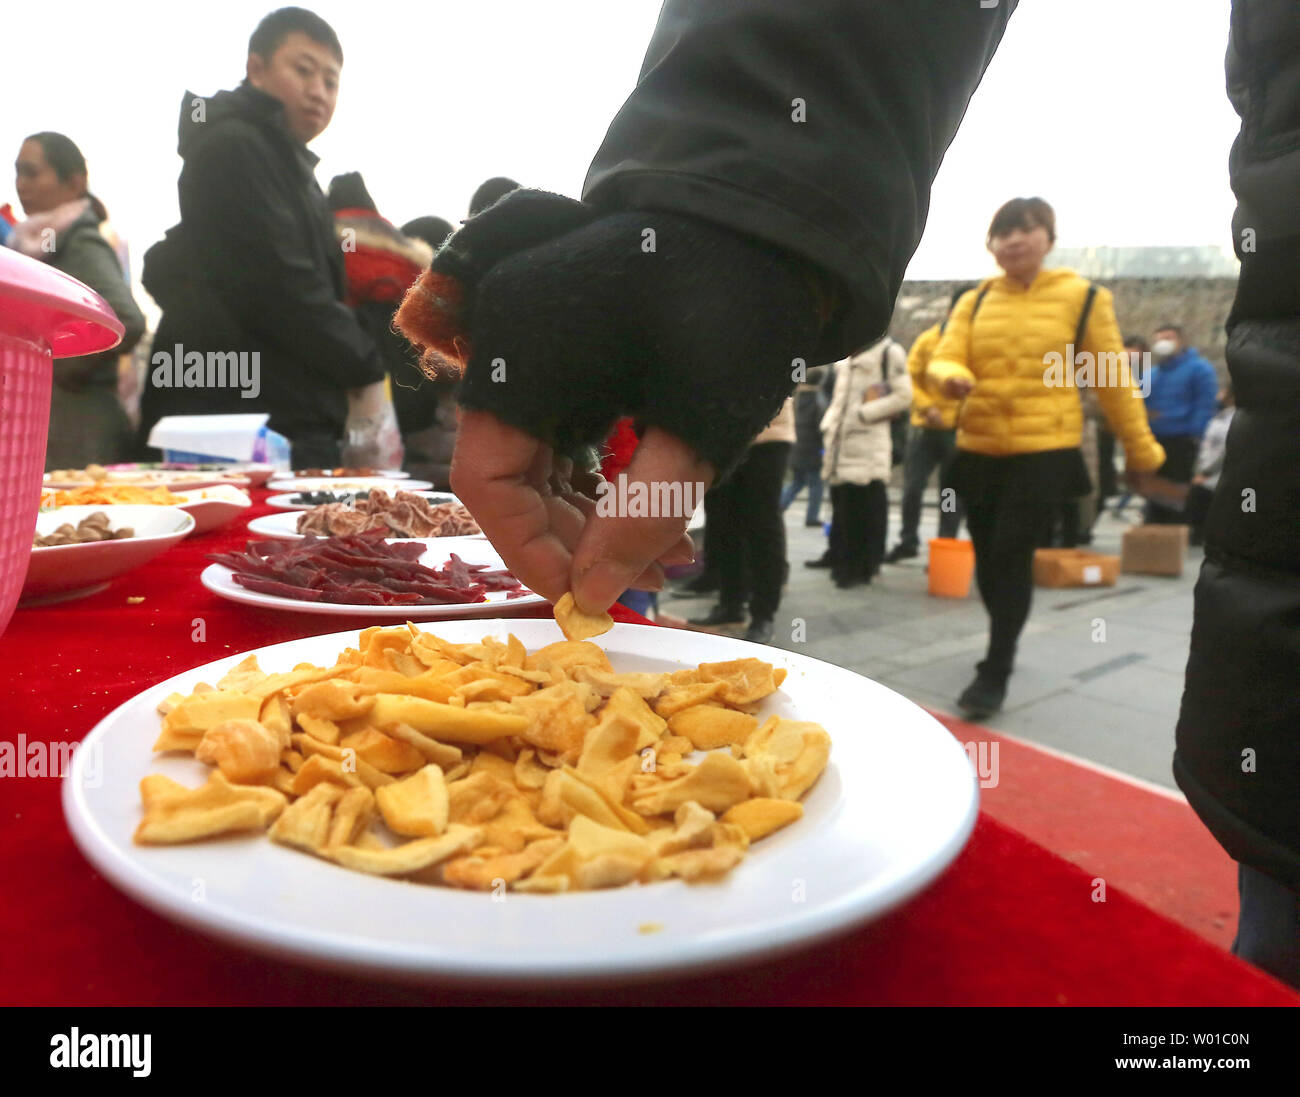 Chinese try samples of free snacks outside a food store as